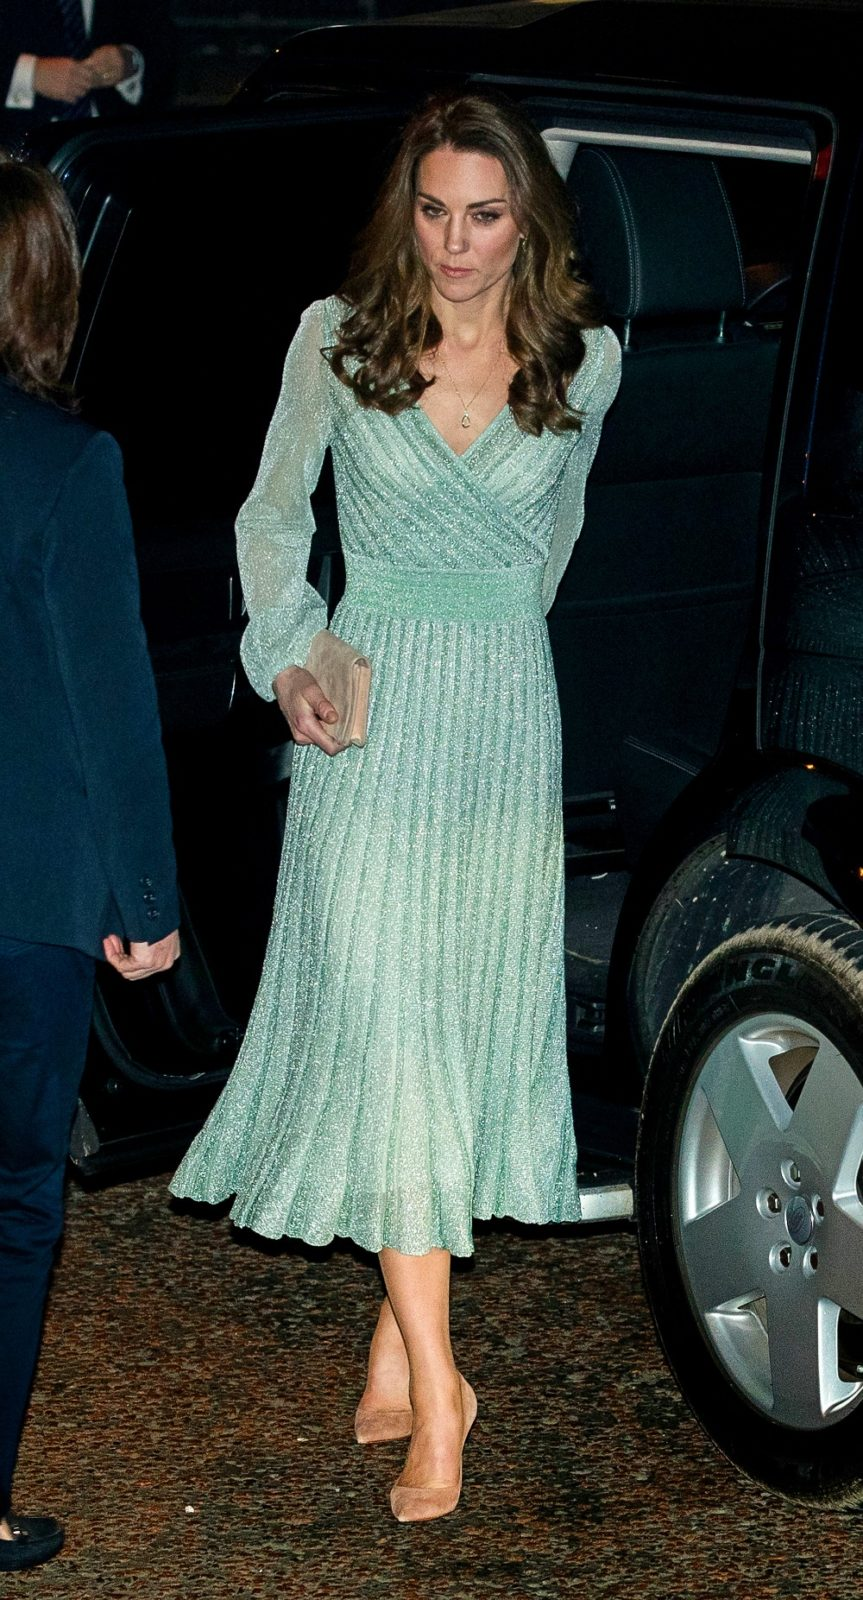 Catherine arrived at the party in a beautiful mint green dress and nude heels. Source: Getty